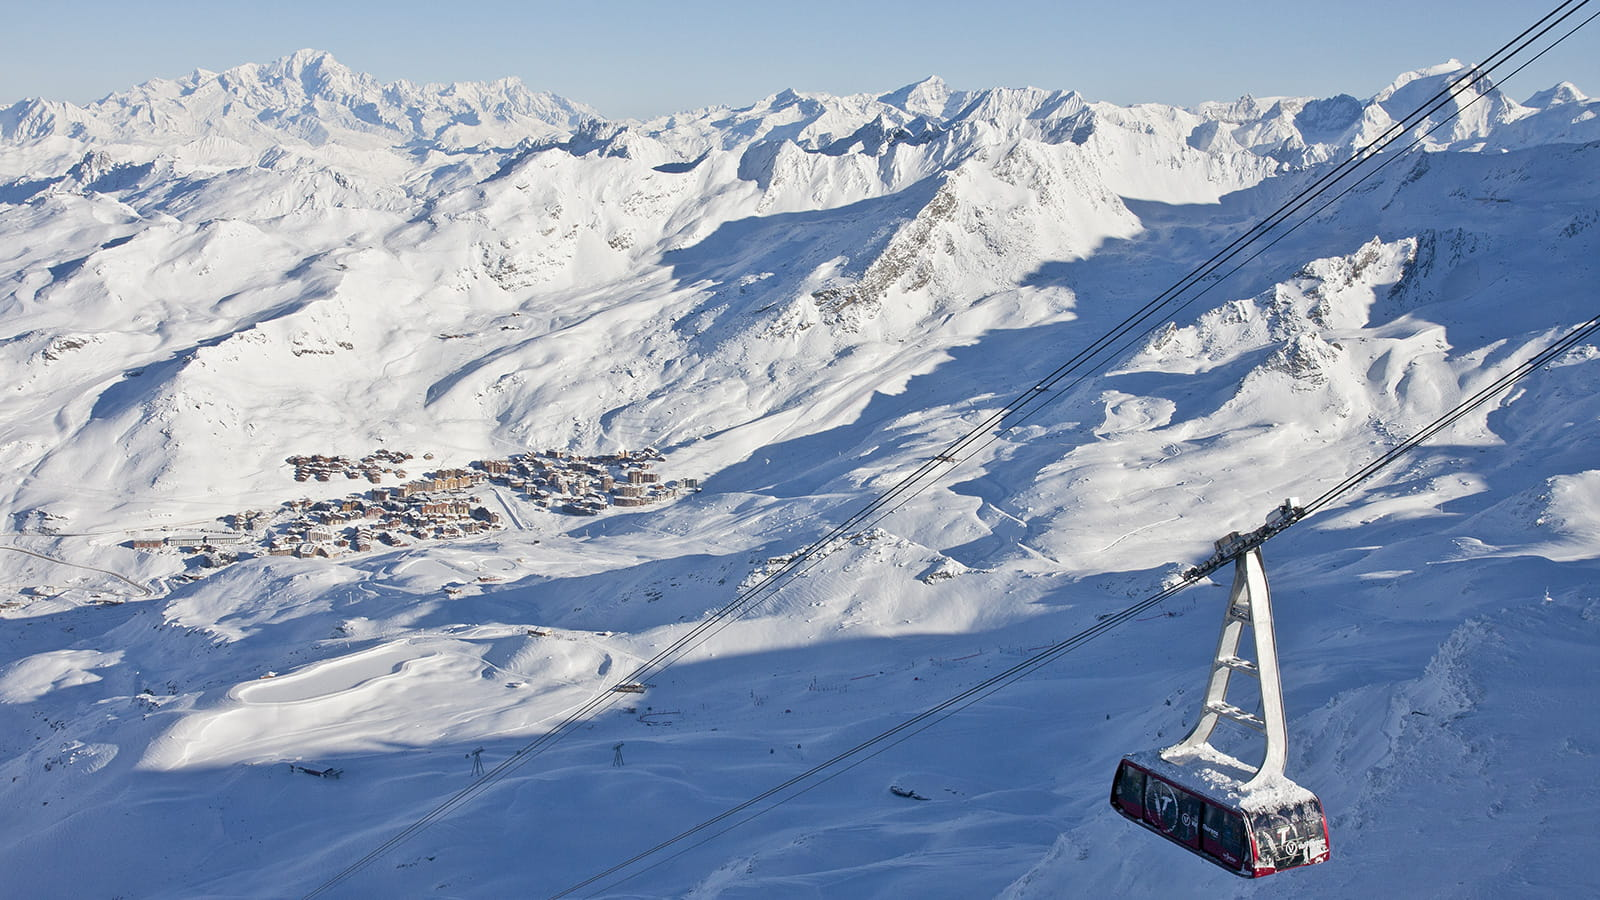 Destination Val Thorens